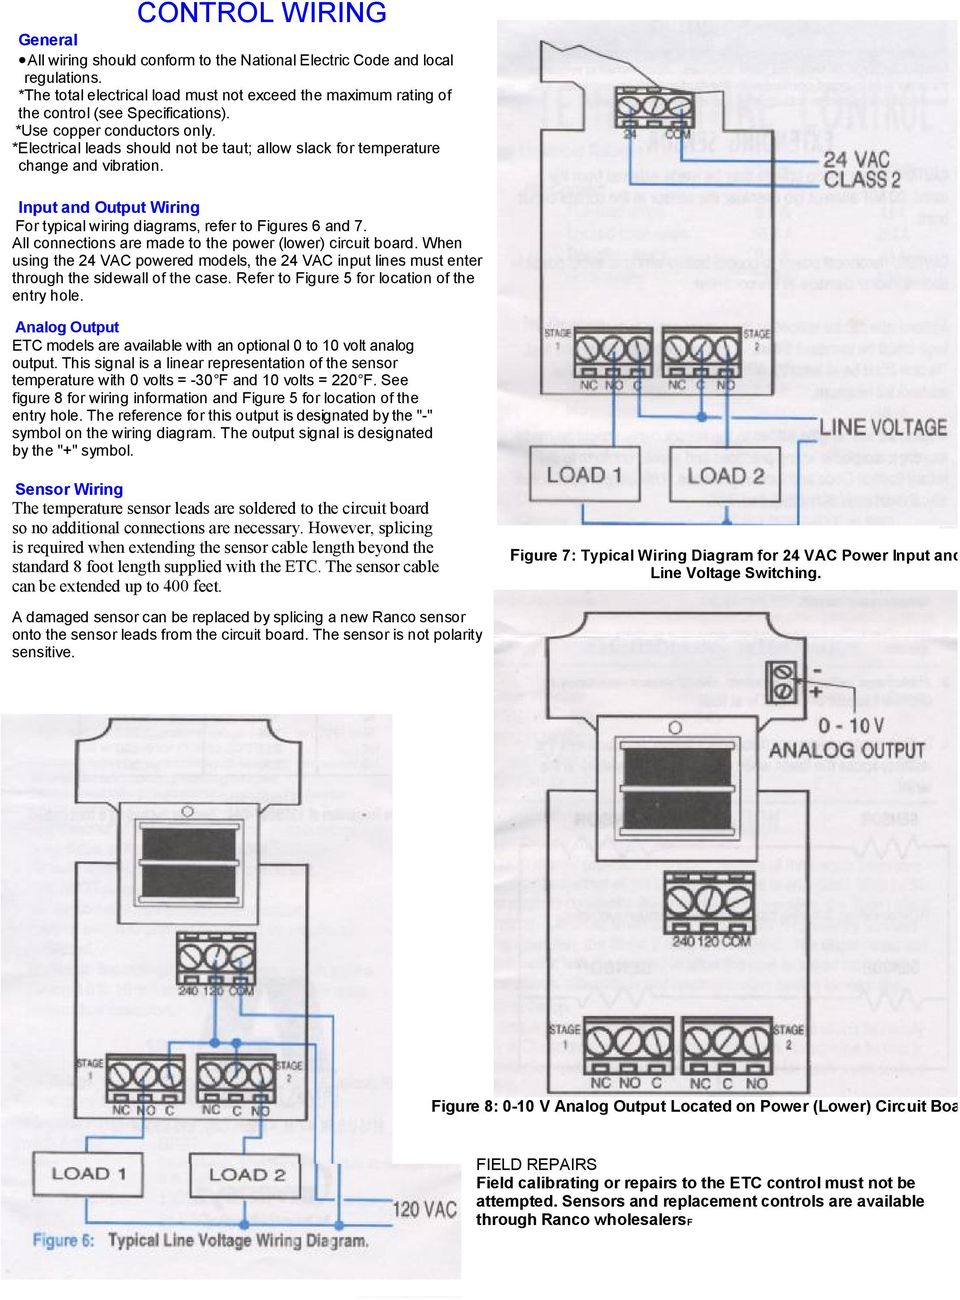 hight resolution of all connections are made to the power lower circuit board when using the